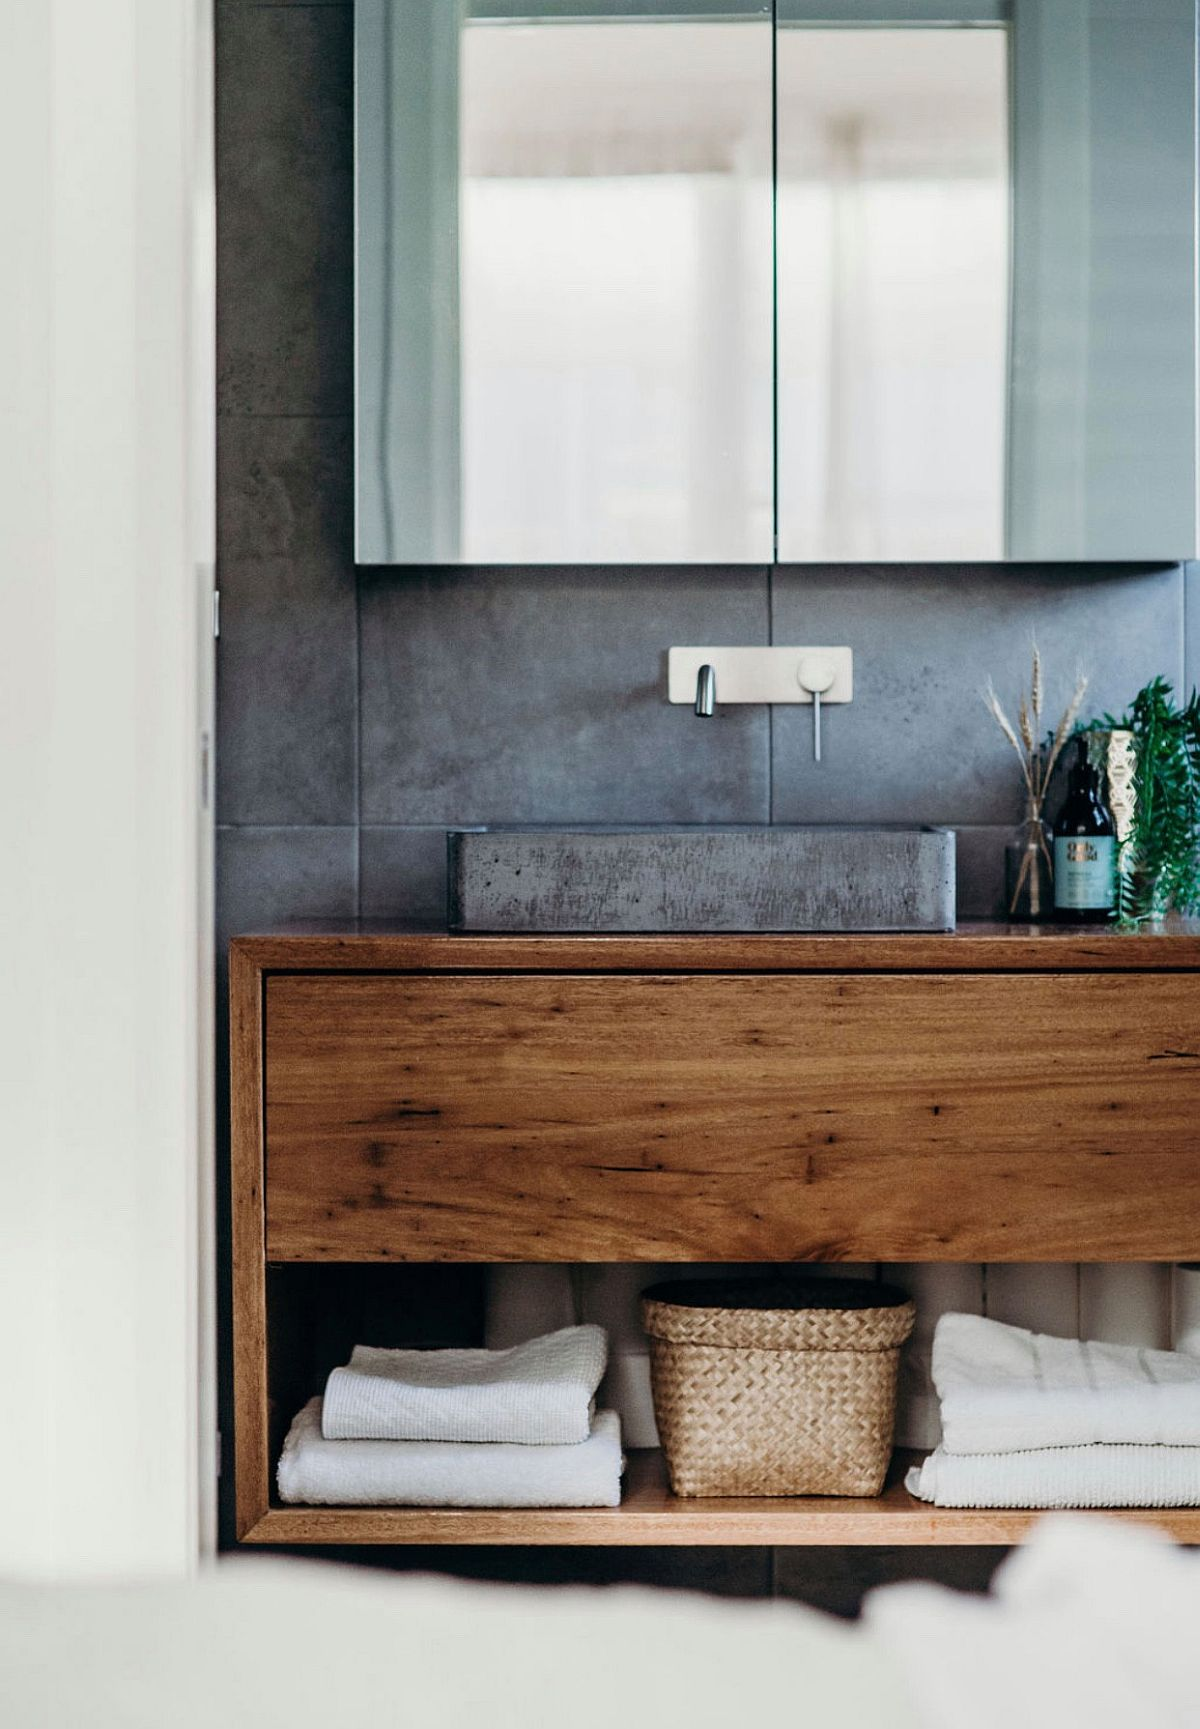 Concrete-accent-wall-for-the-bathroom-in-white-with-a-wooden-vanity-89550